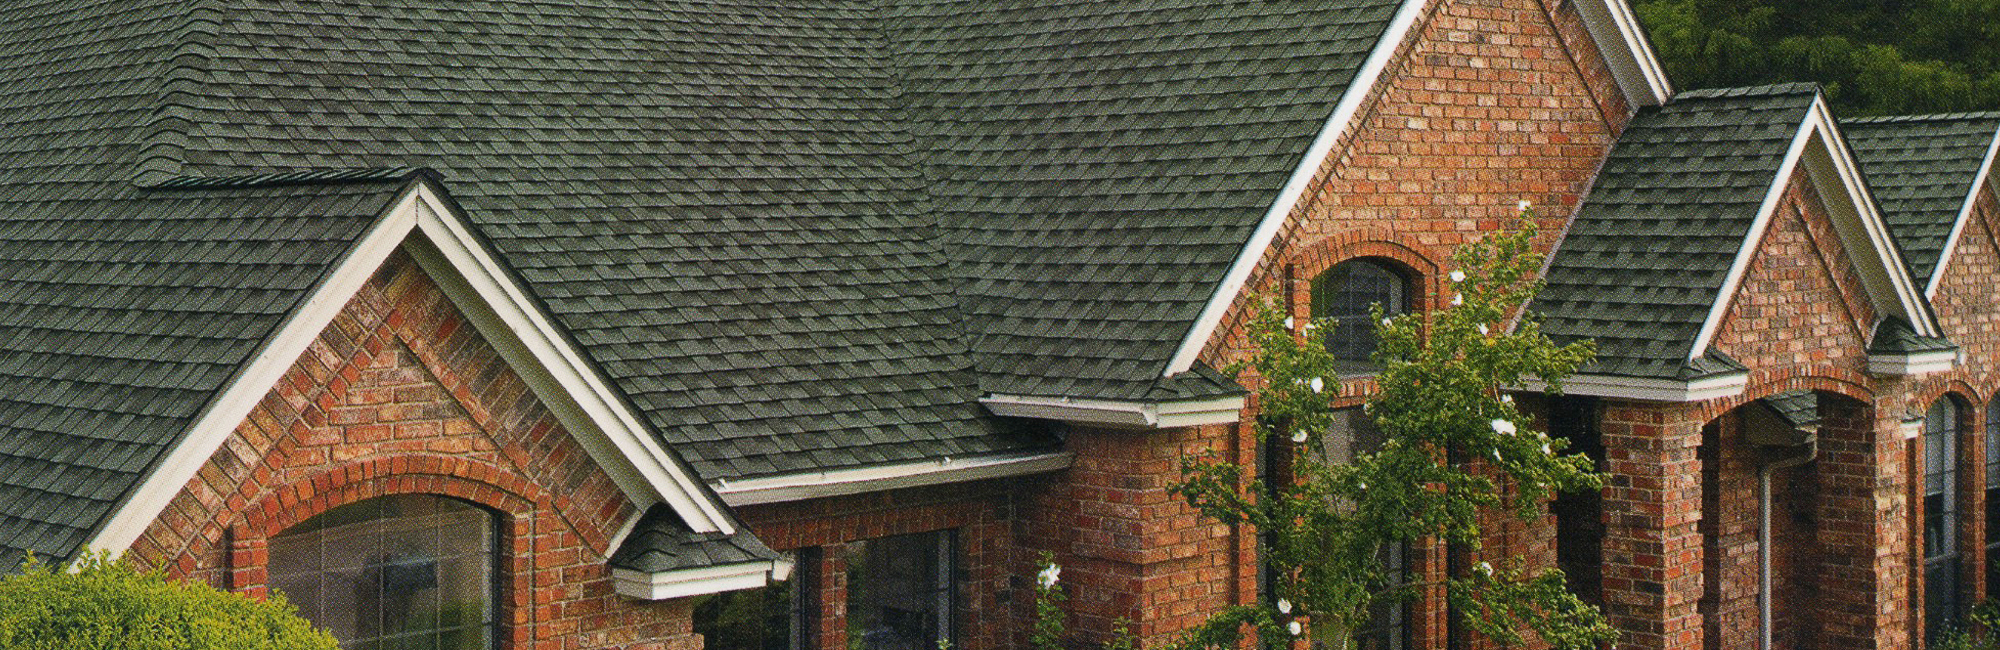 roofing_01